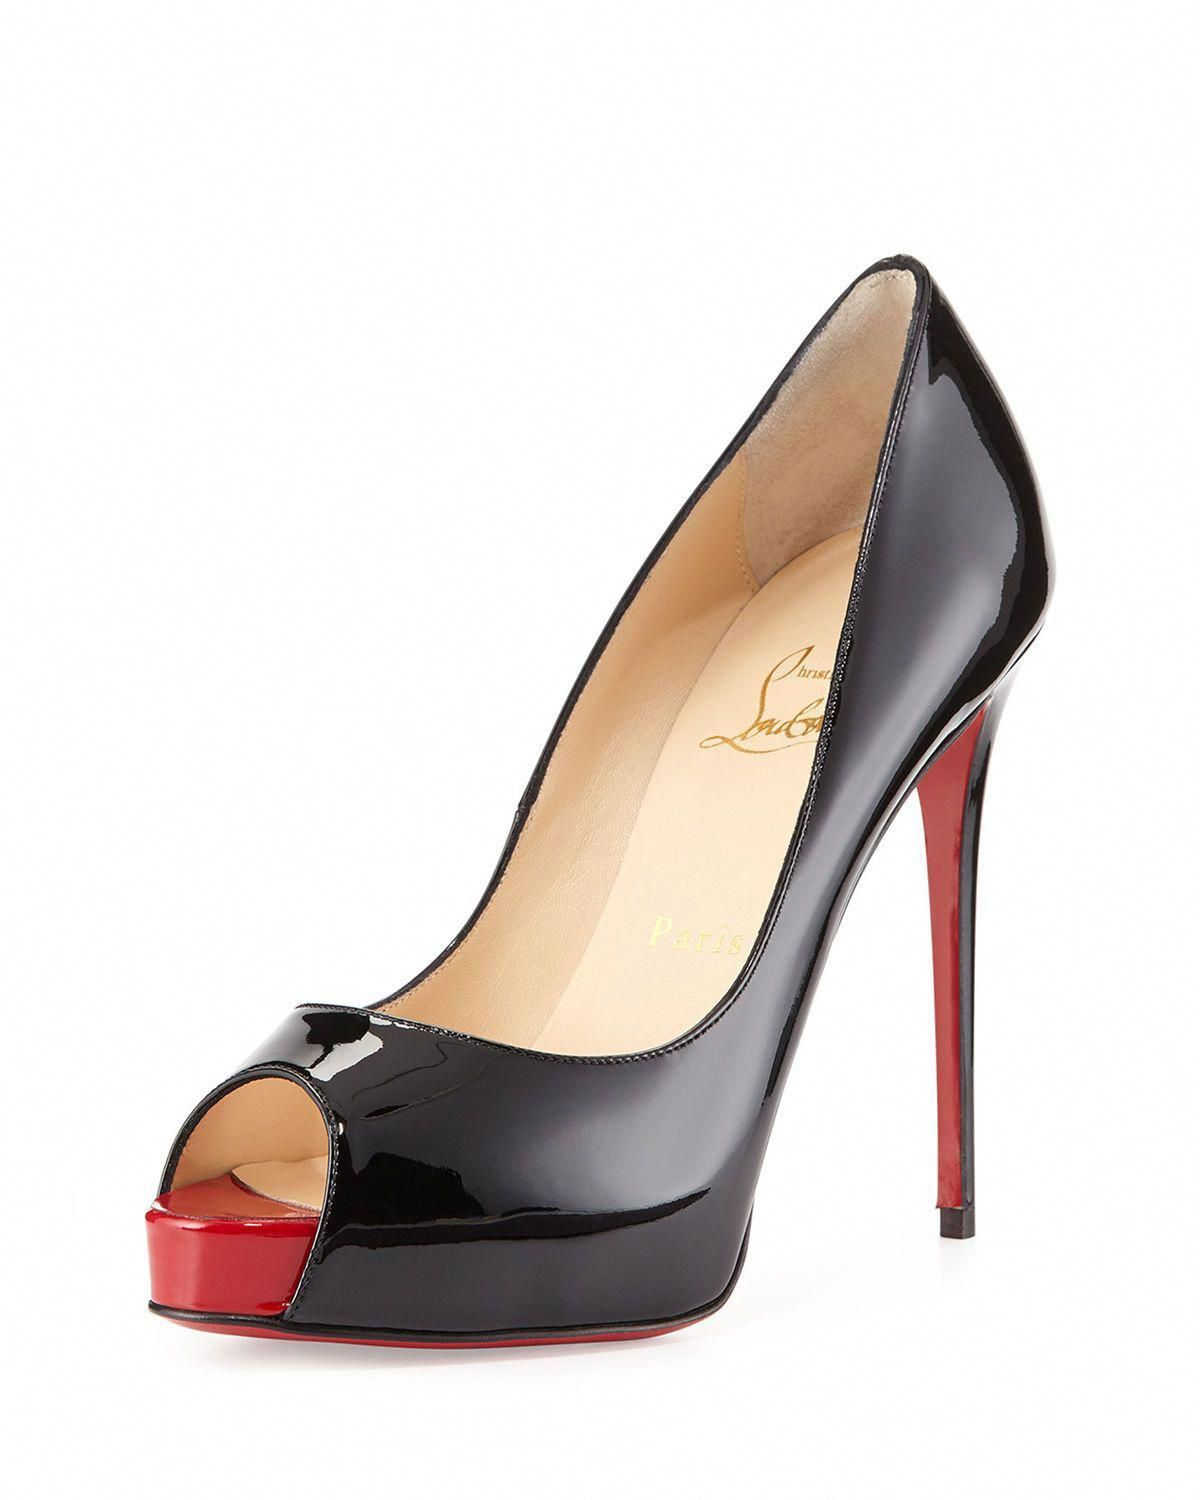 0fff64b5b0c6 Christian Louboutin New Very Prive Patent Red Sole Pump  ChristianLouboutin